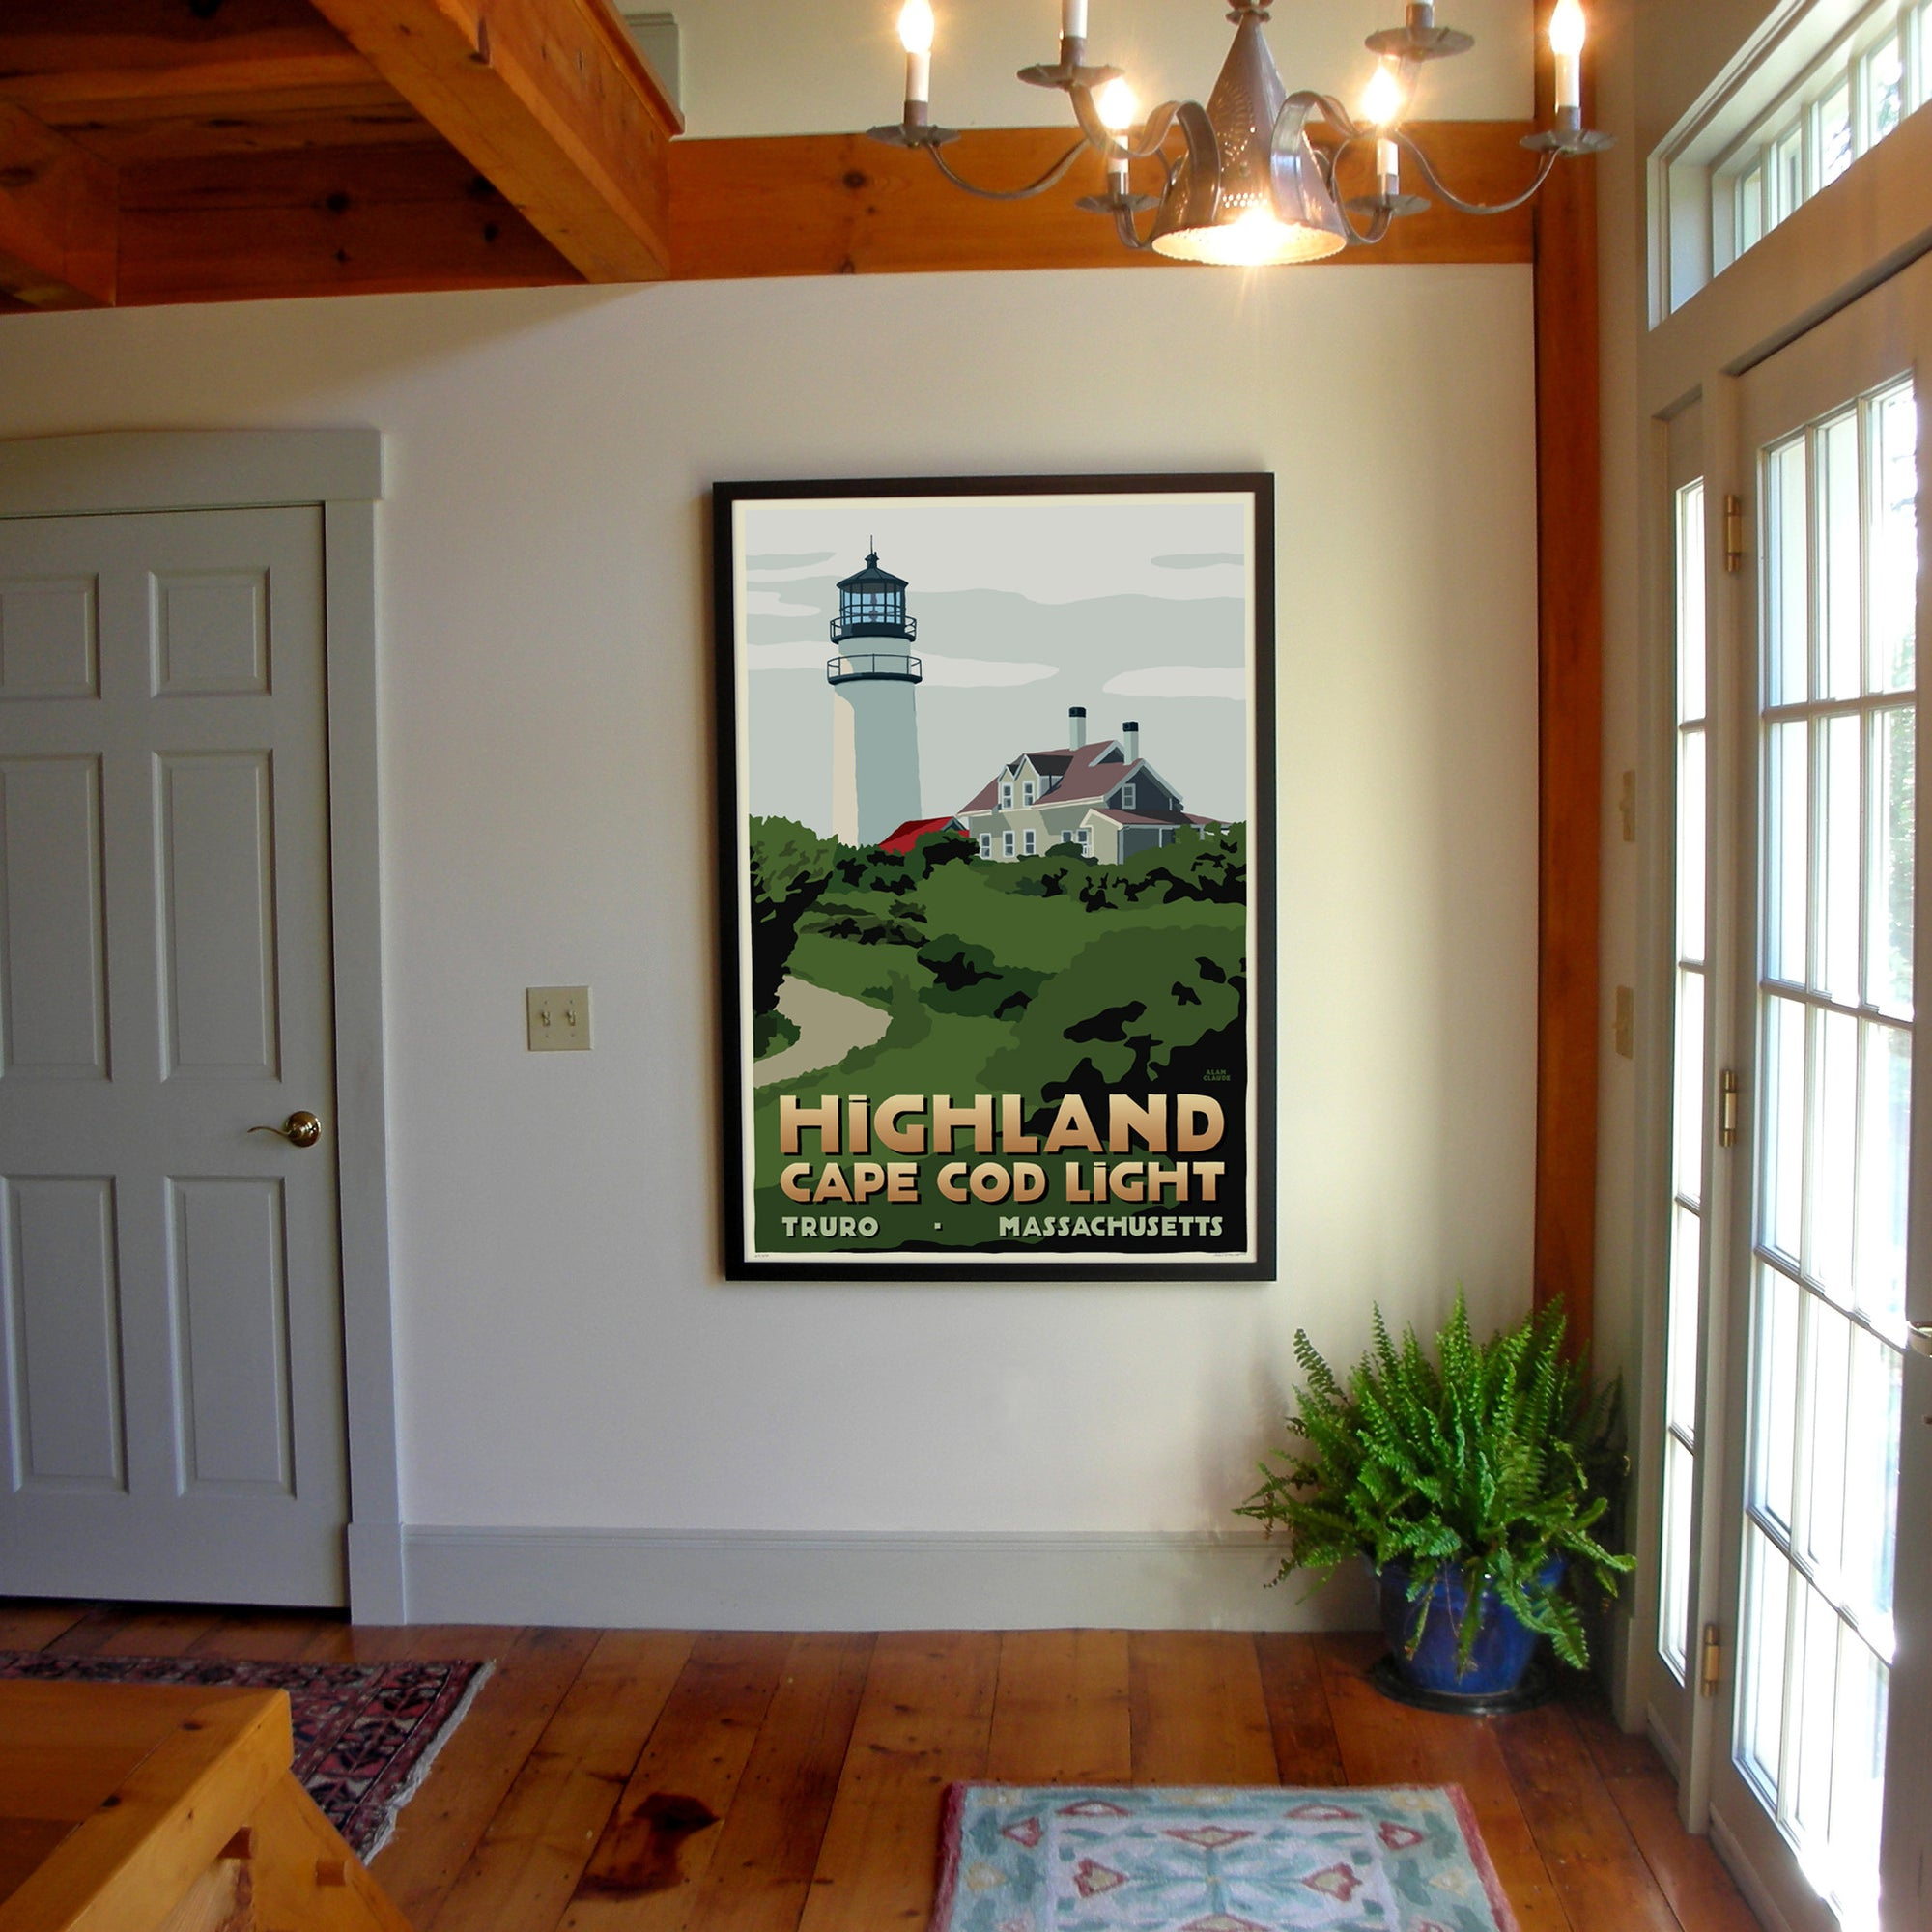 "Highland Light Art Print 36"" x 53"" Framed Travel Poster - Massachusetts"